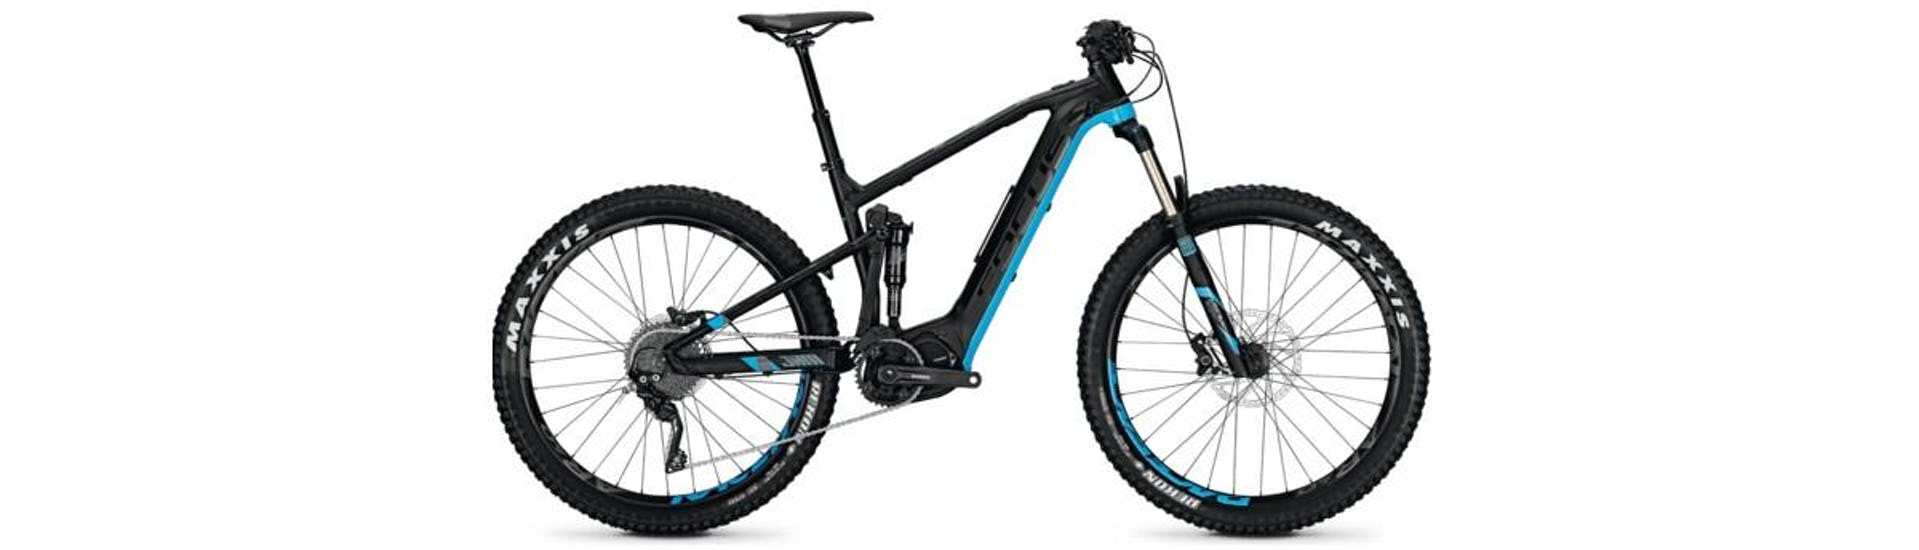 Rental - E-Mountain Bike for Adults